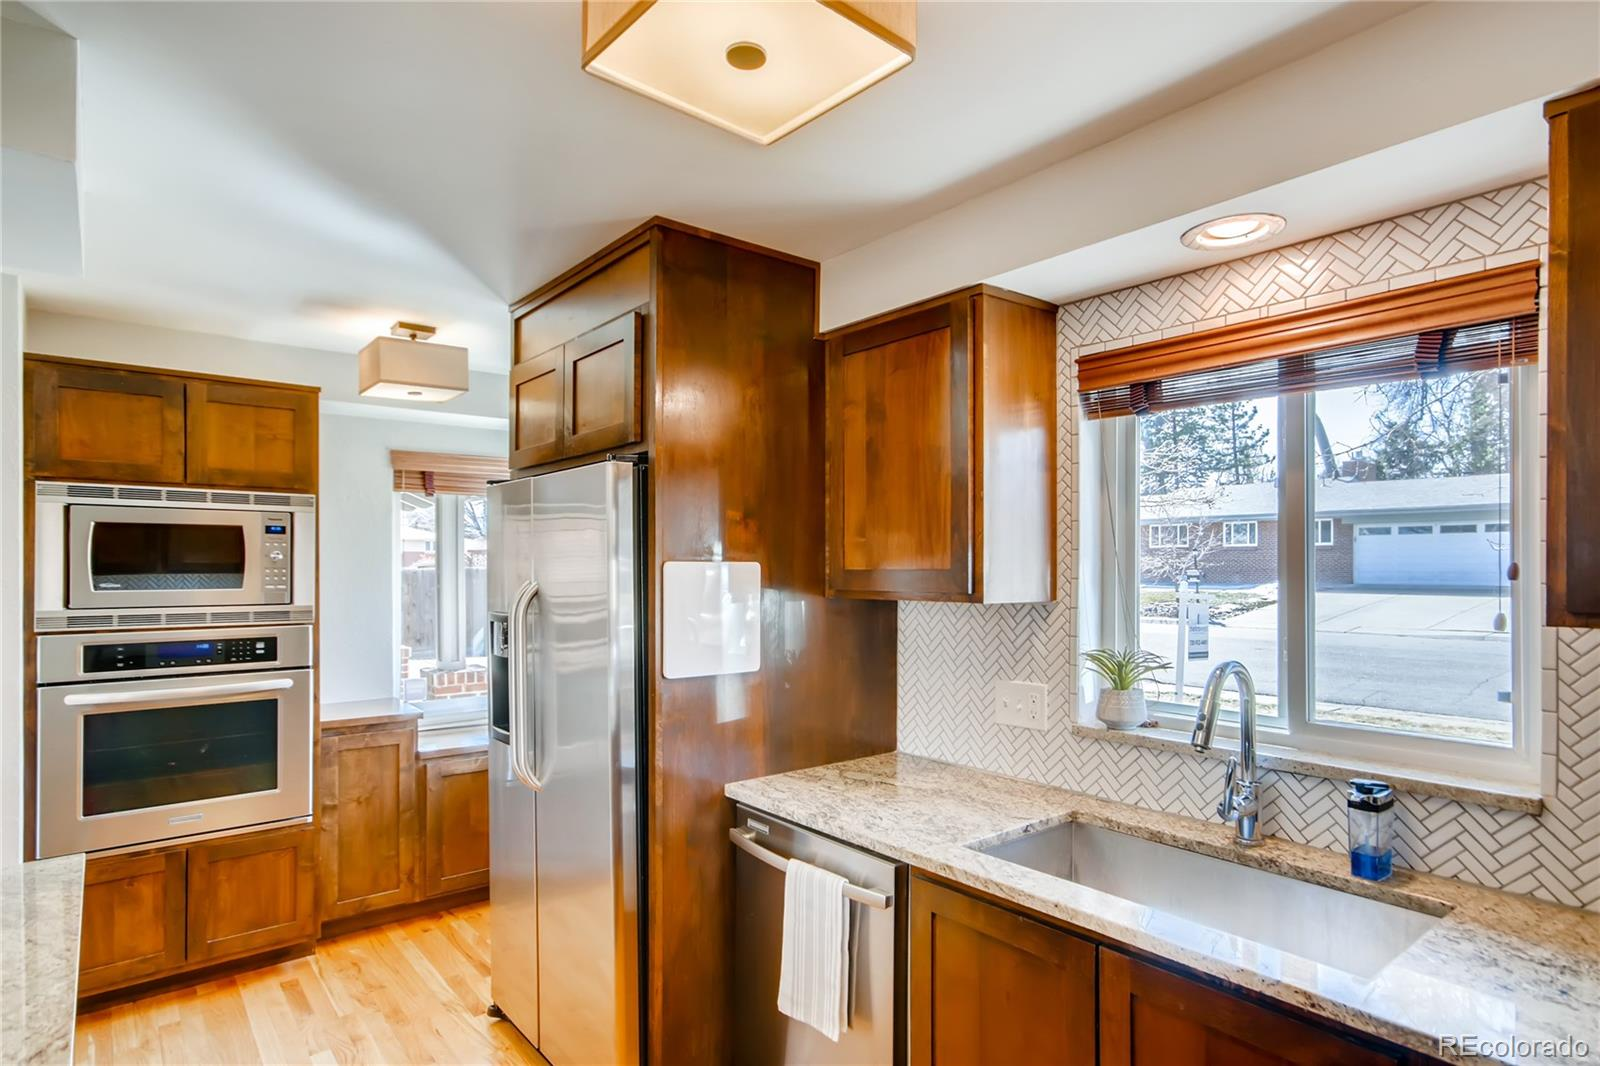 MLS# 9197299 - 14 - 10511 W 22nd Place, Lakewood, CO 80215